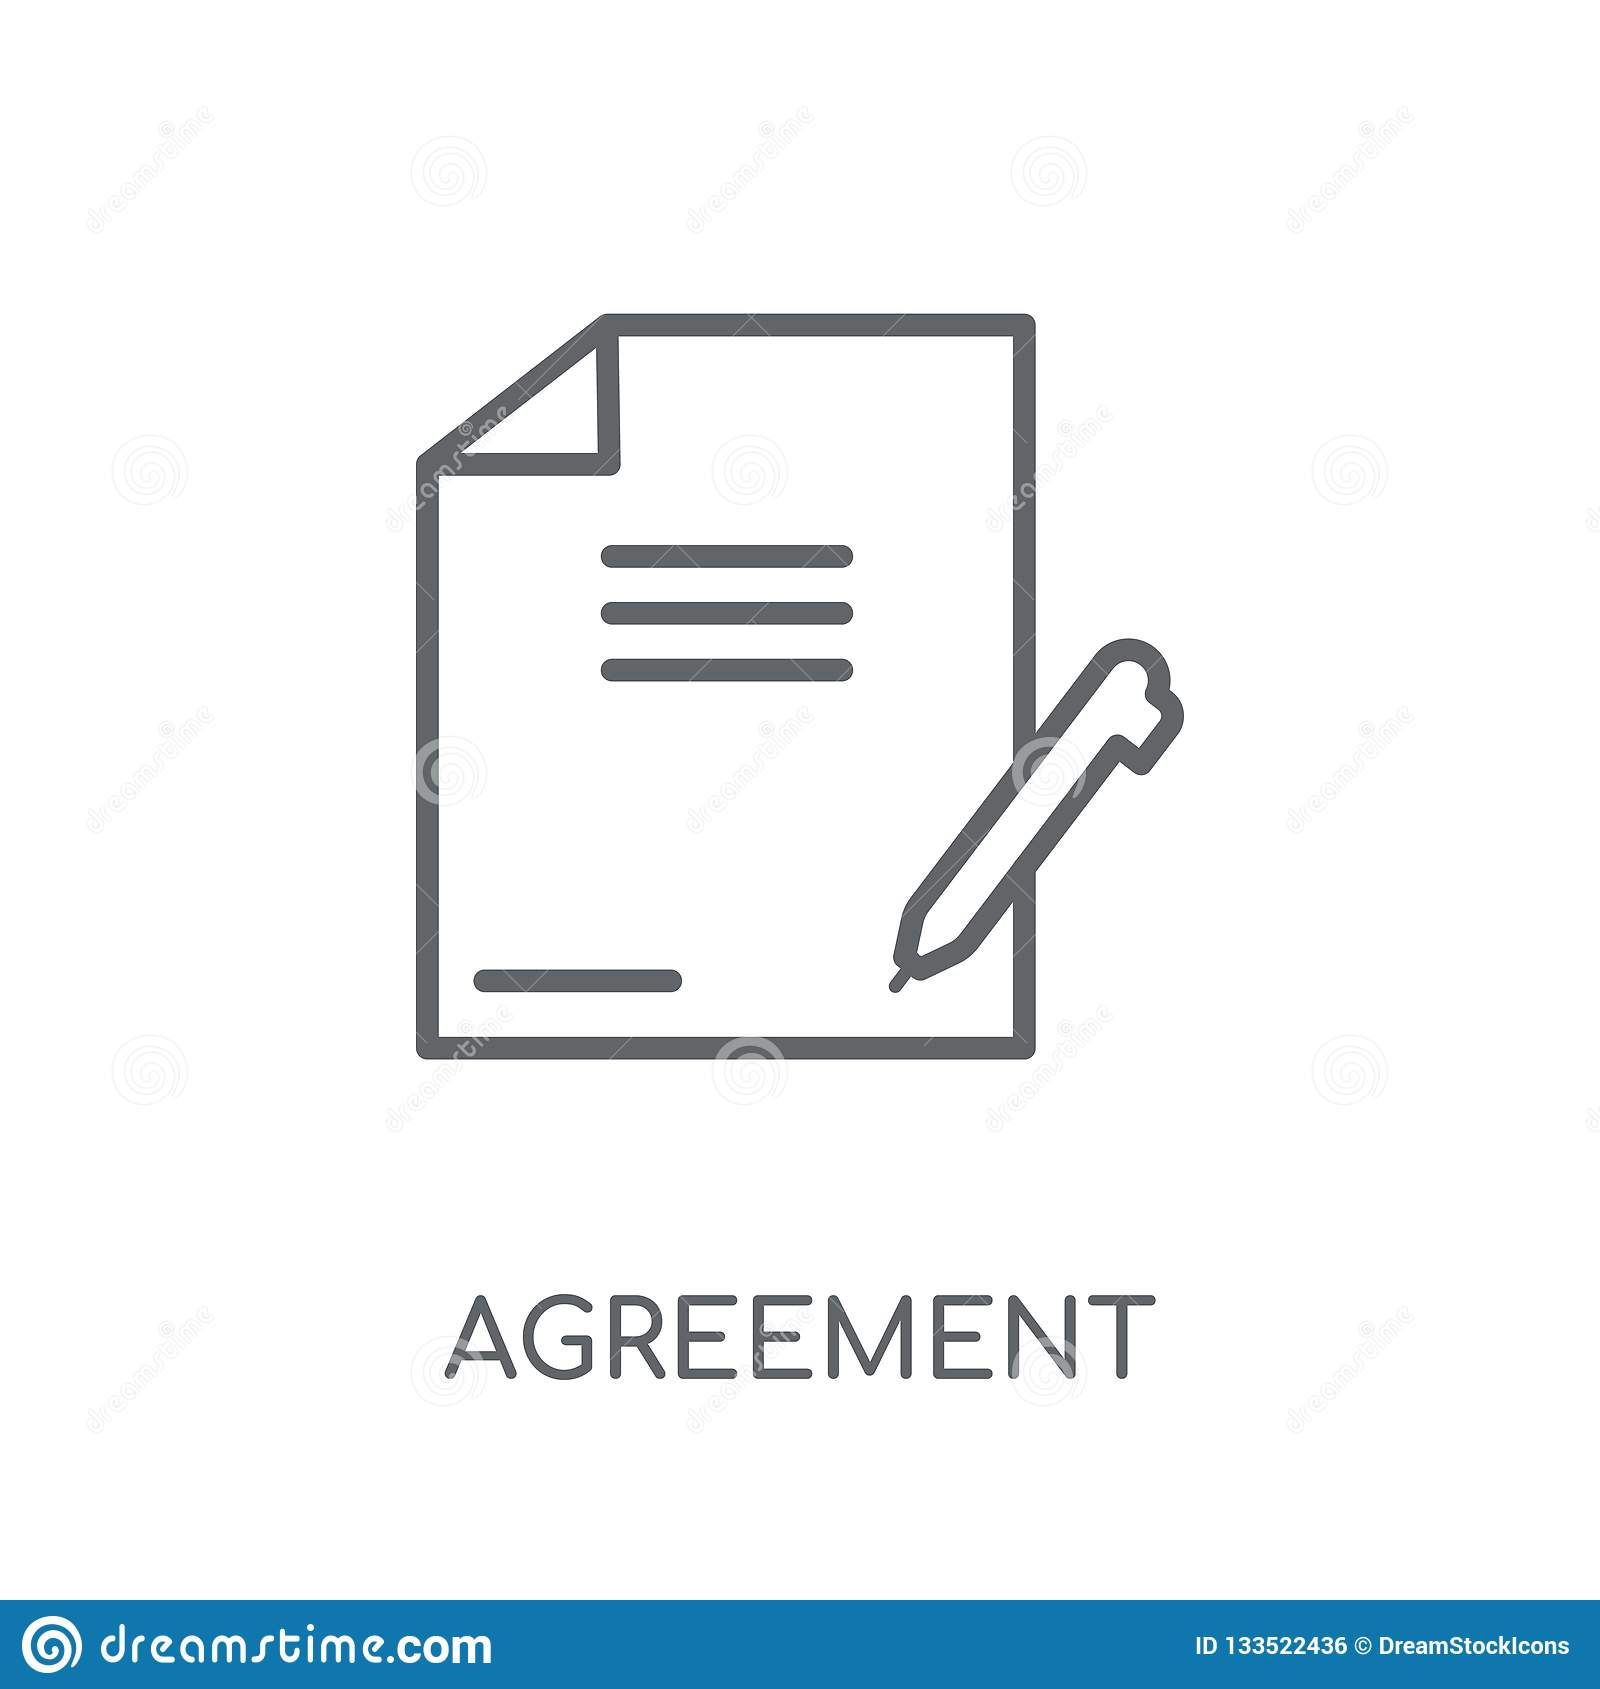 Agreement linear icon. Modern outline Agreement logo concept on